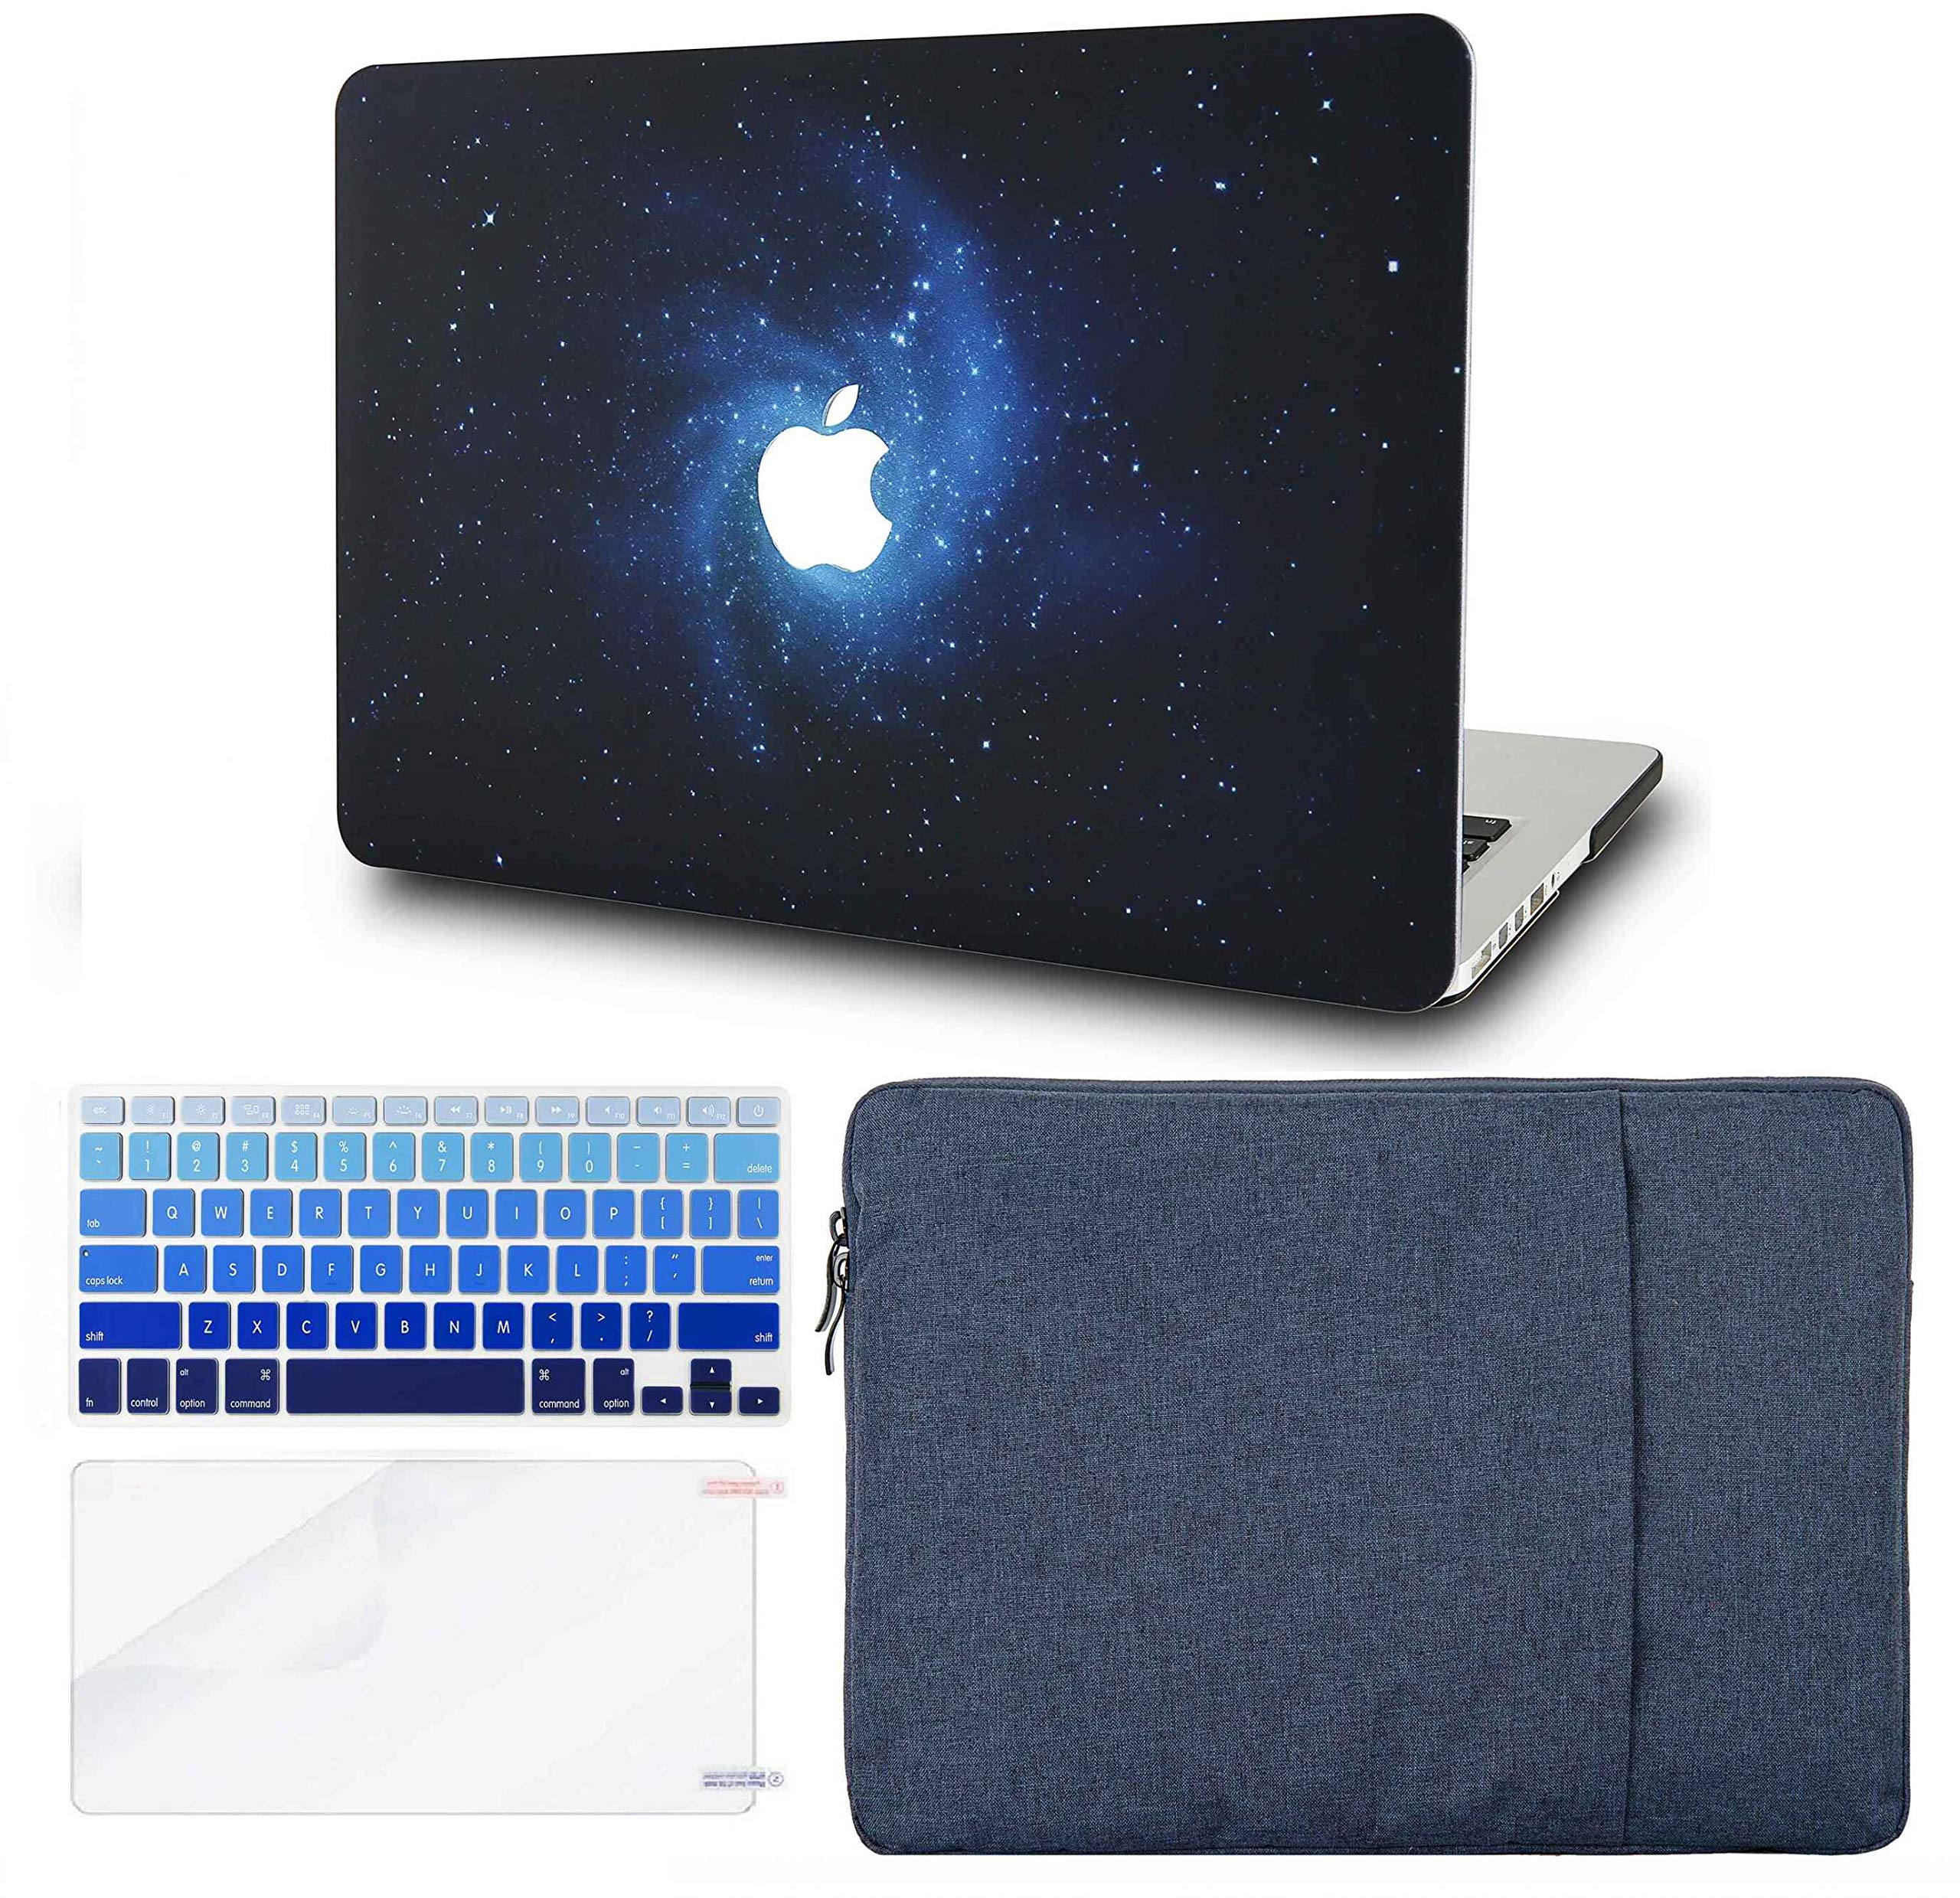 """KECC Laptop Case for MacBook Air 13"""" w/Keyboard Cover + Sleeve + Screen Protector (4 in 1 Bundle) Plastic Hard Shell Case A1466/A1369 (Blue)"""